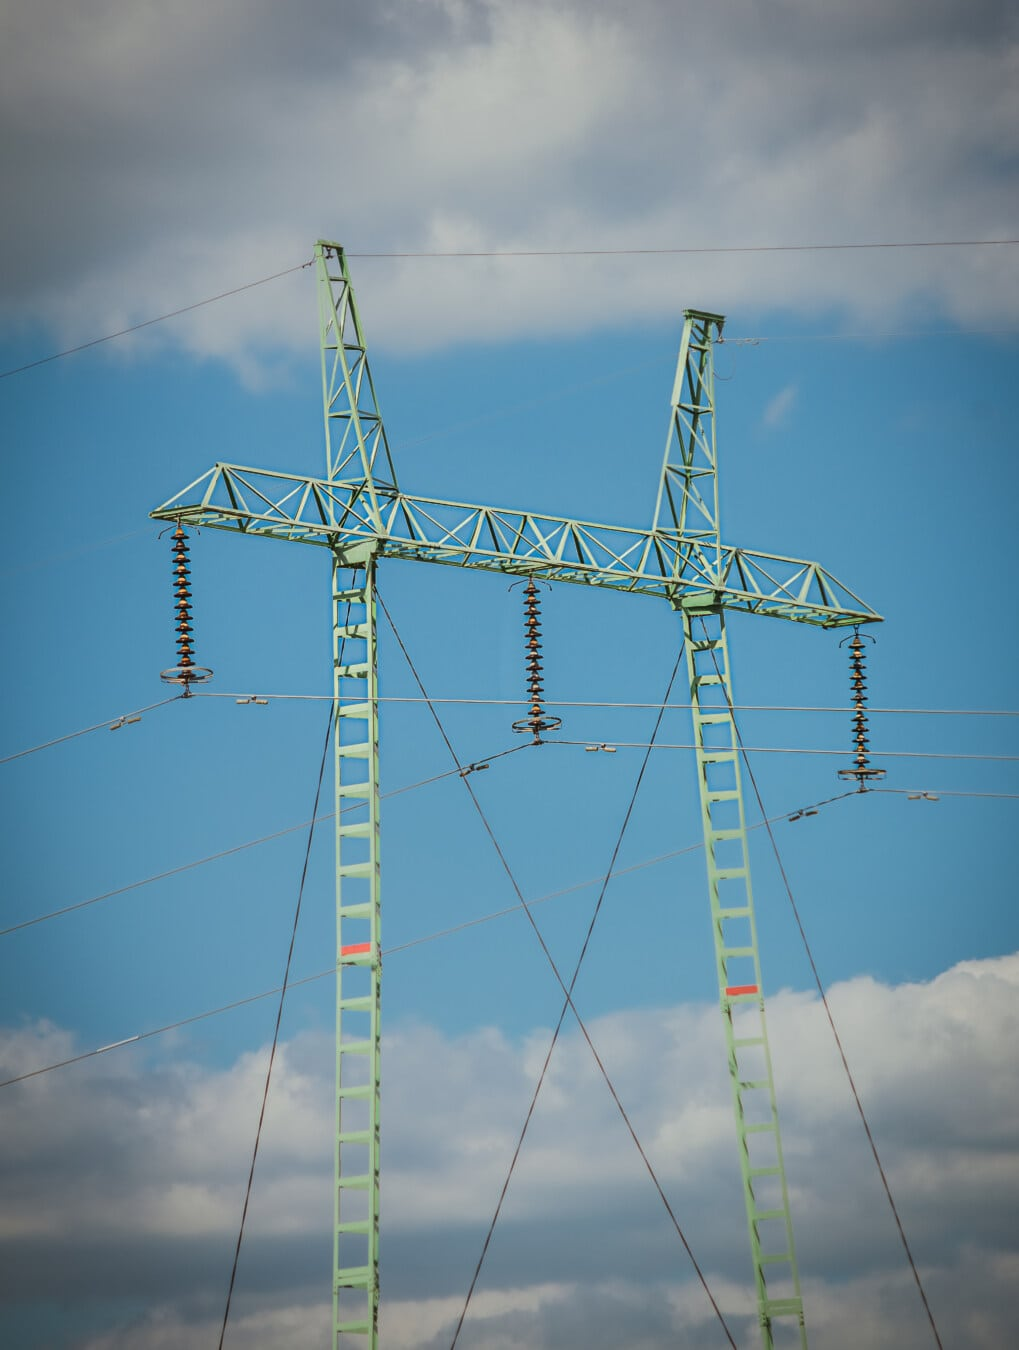 electricity, pylon, transmission, distribution, high, voltage, wires, energy, tower, cable